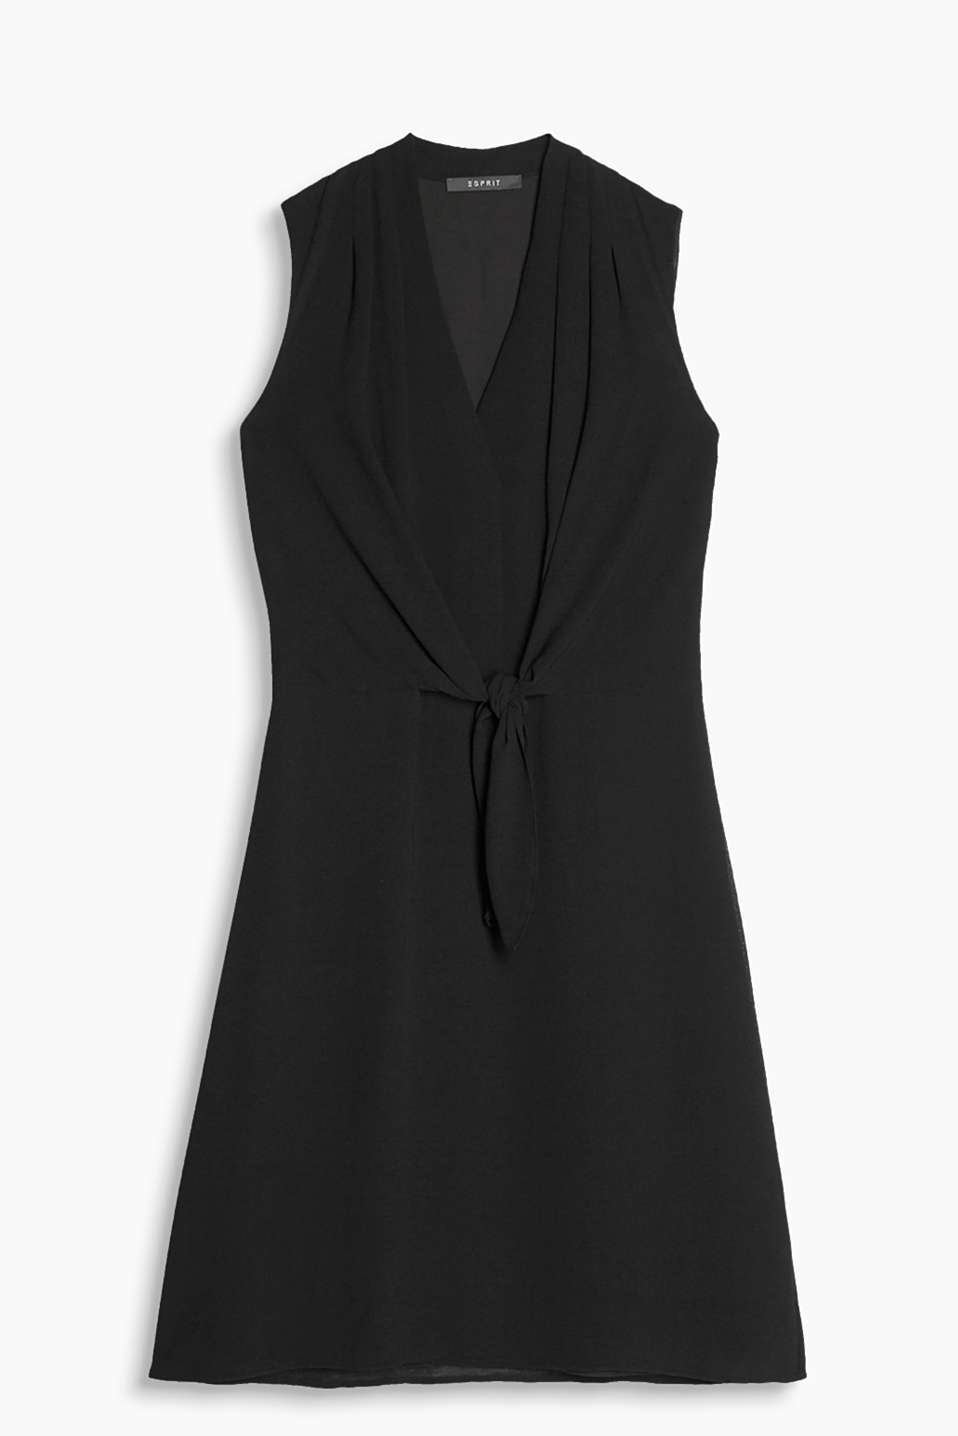 A new little black dress: dress with swirling skirt, pleated neckline and decorative knot detail